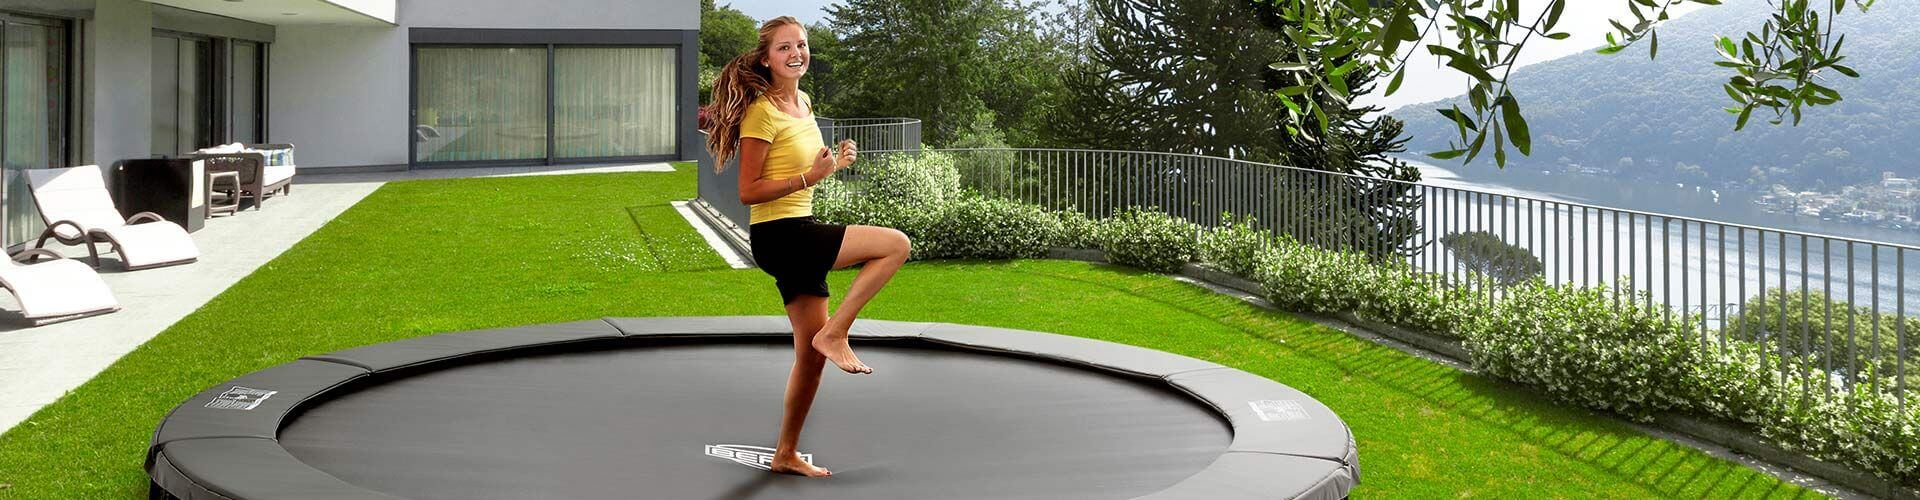 trampolin gesundheit fitness h pf dich fit mit trampolin profi. Black Bedroom Furniture Sets. Home Design Ideas